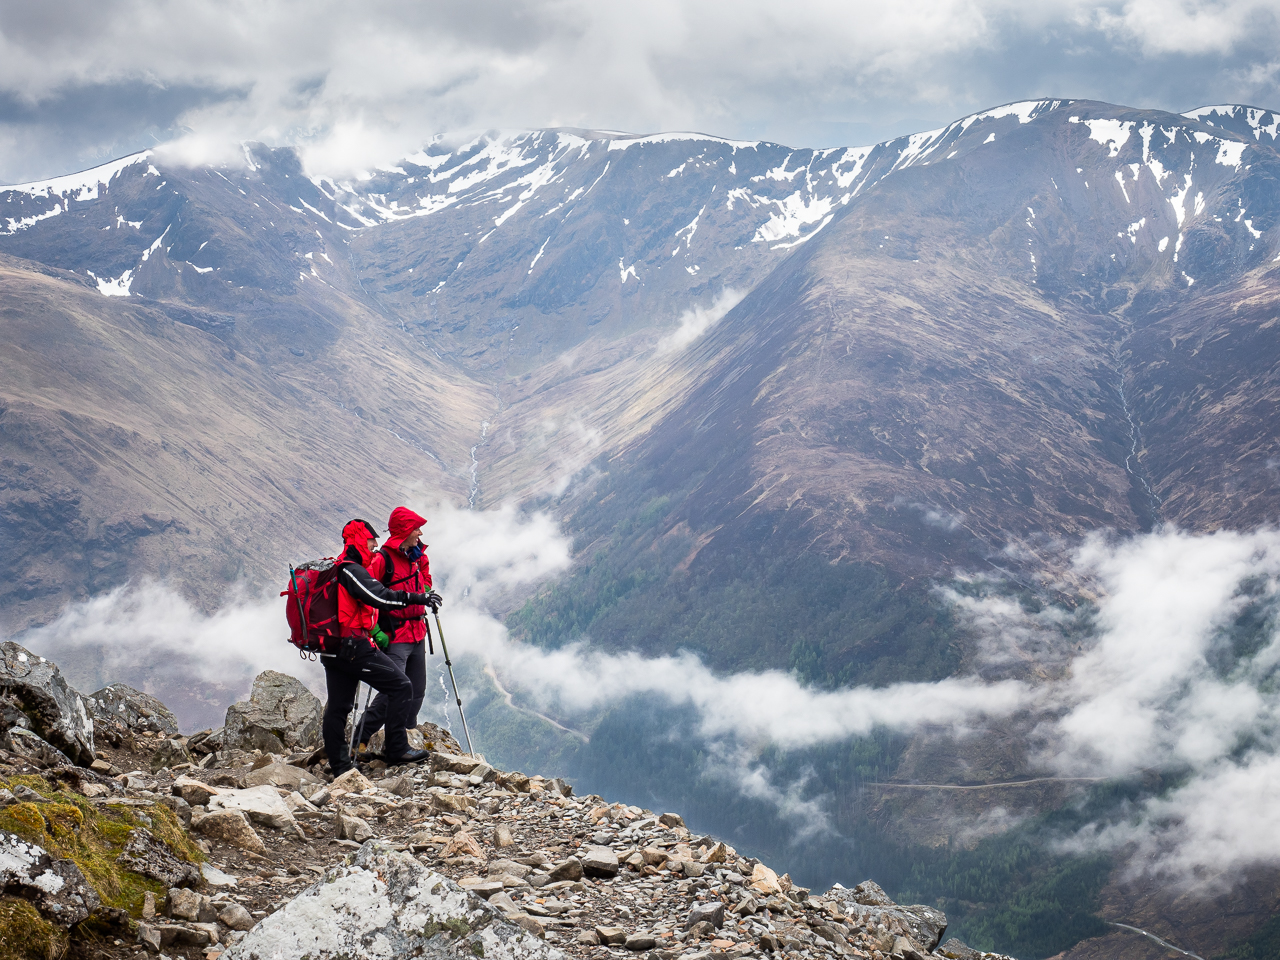 Travel photography Scotland: Adventure travel photography: Members of the Royal Air Force Mountain Rescue Team ascend Ben Nevis, Britain's highest mountain, on 7 April 2018 as part of celebrations marking the RAF's 100th anniversary.